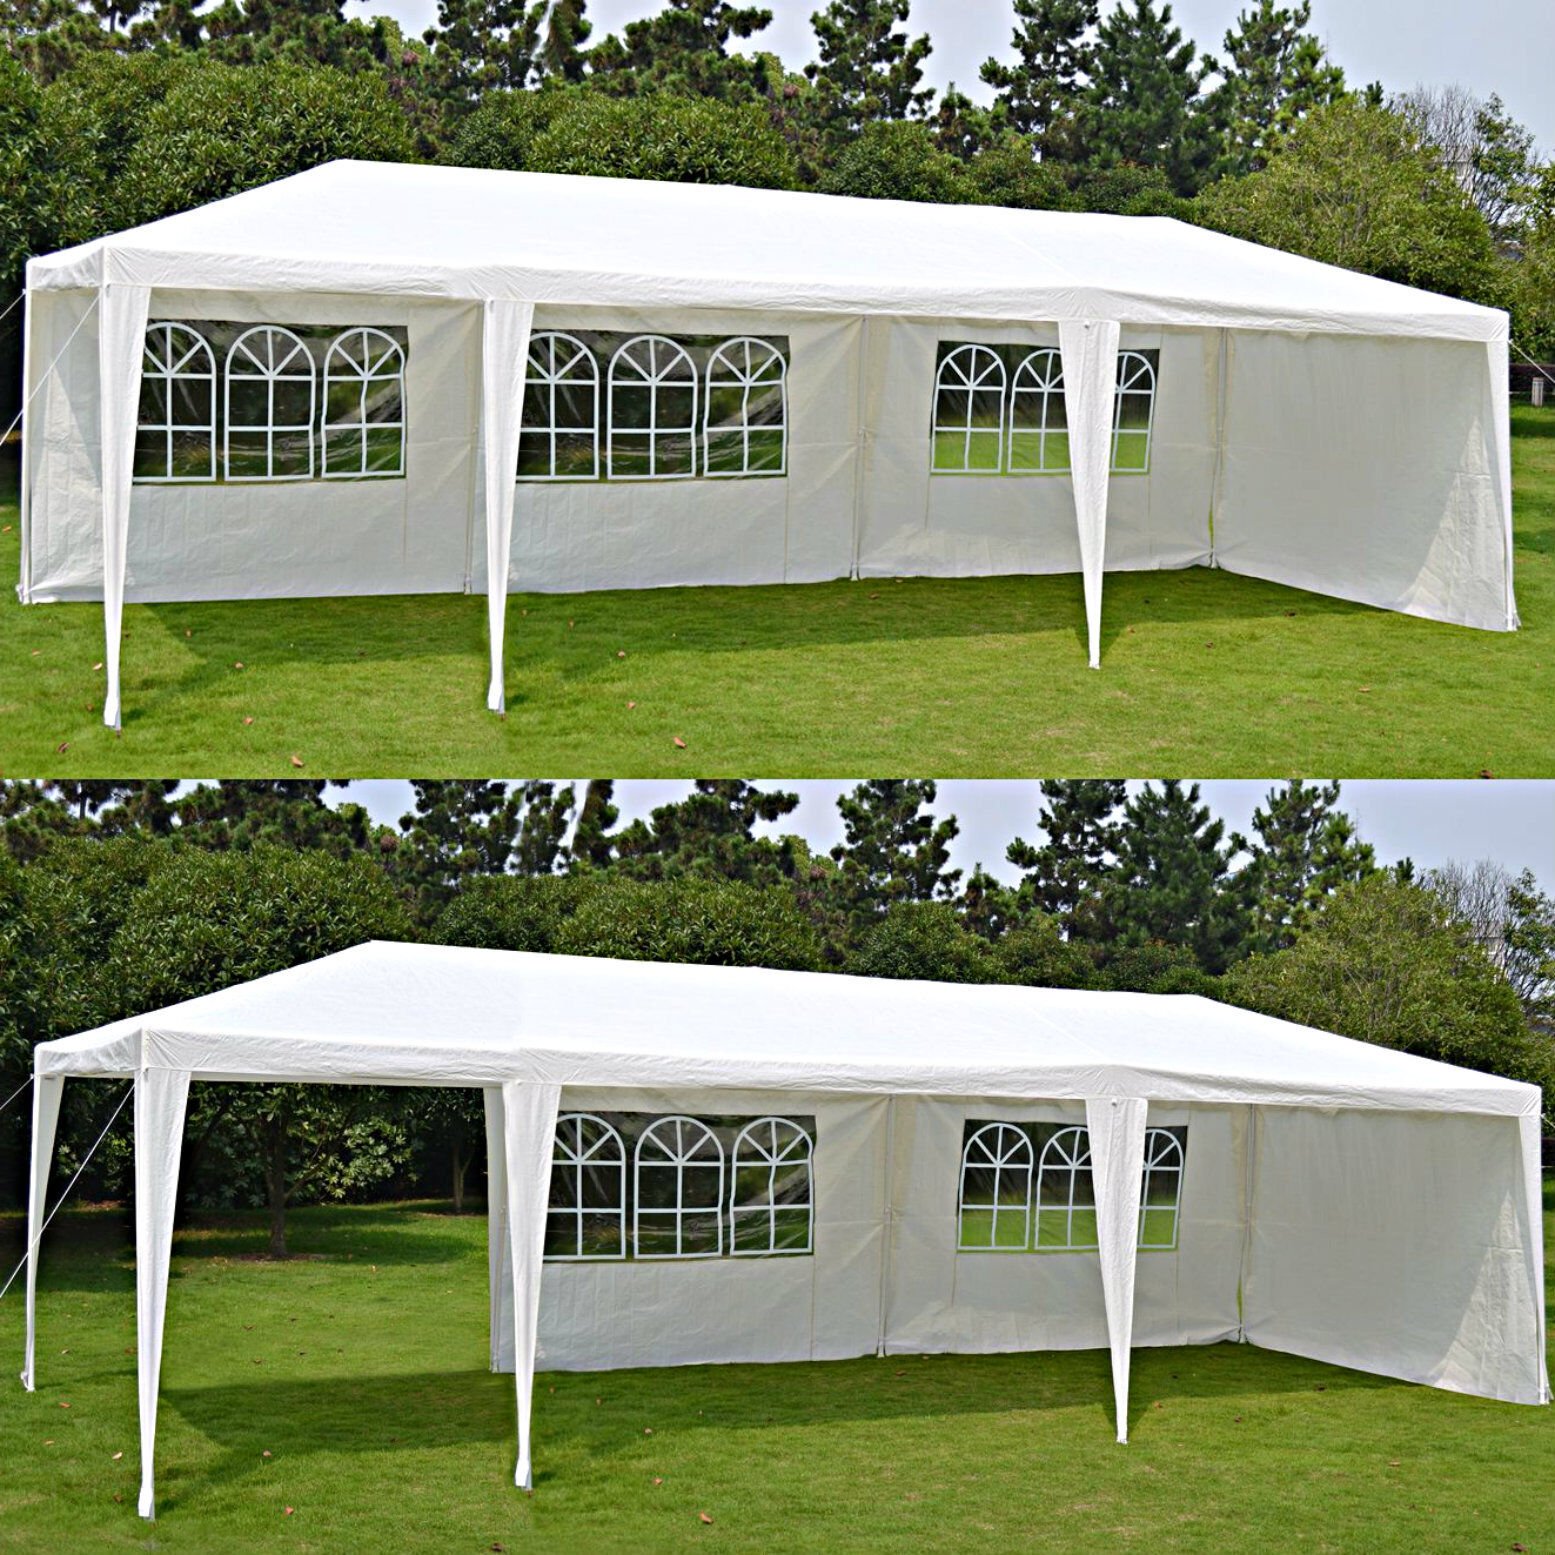 Temporary Back Yard Shelters : Outdoor party canopy tent wedding gazebo pavilion x